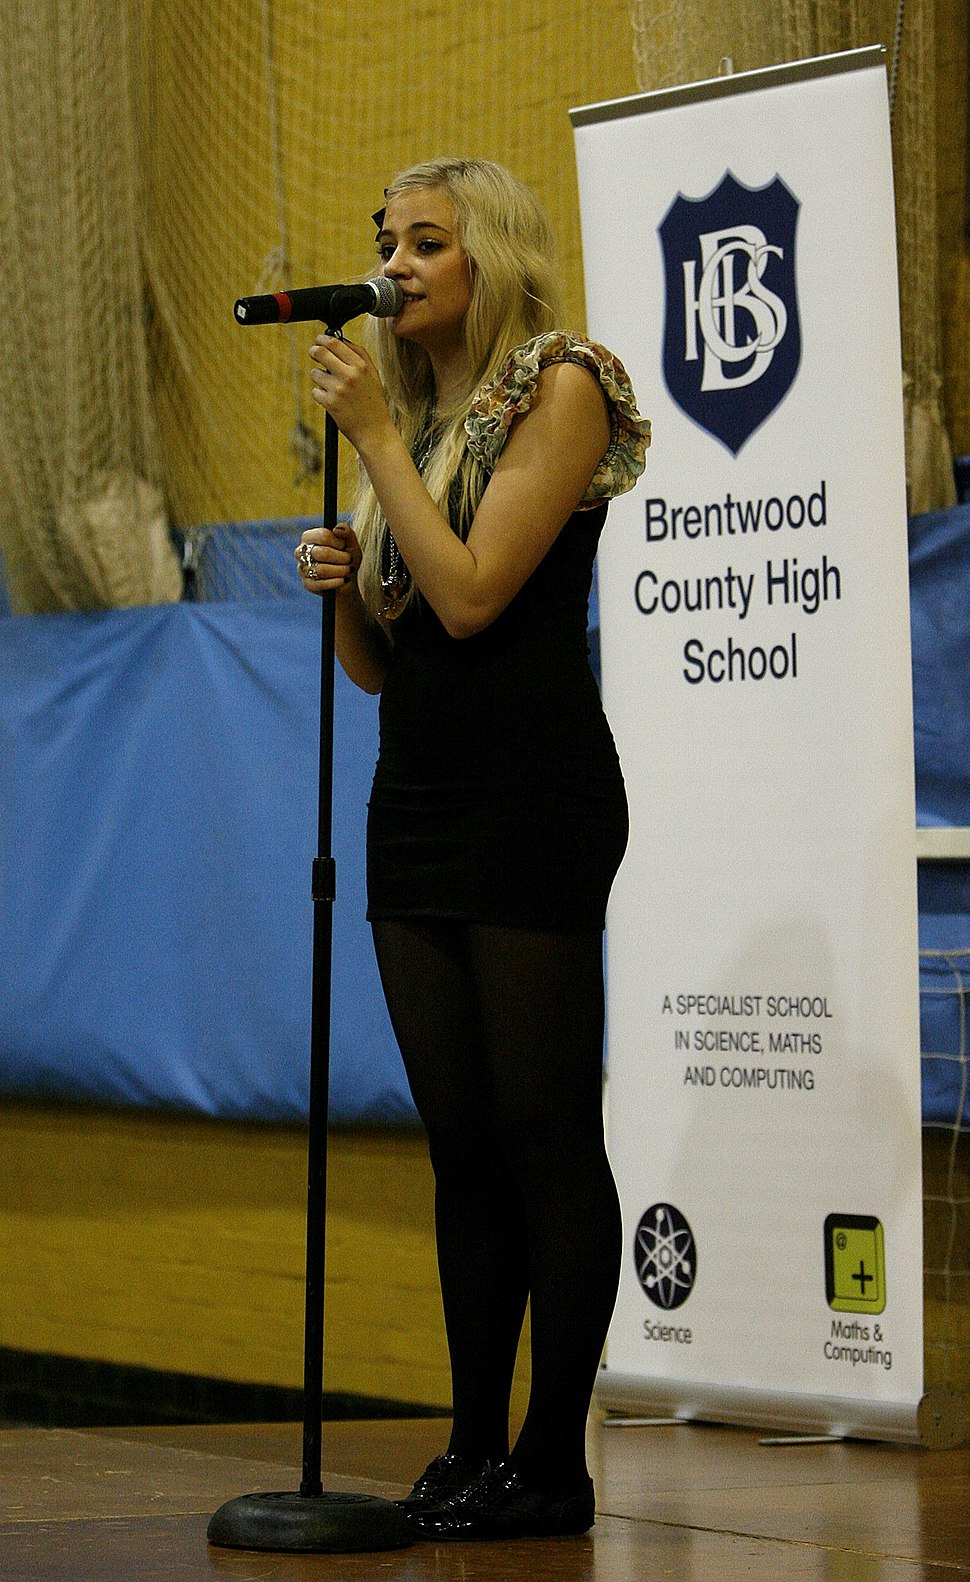 Pixie Lott performing at Brentwood County High School in 2010.